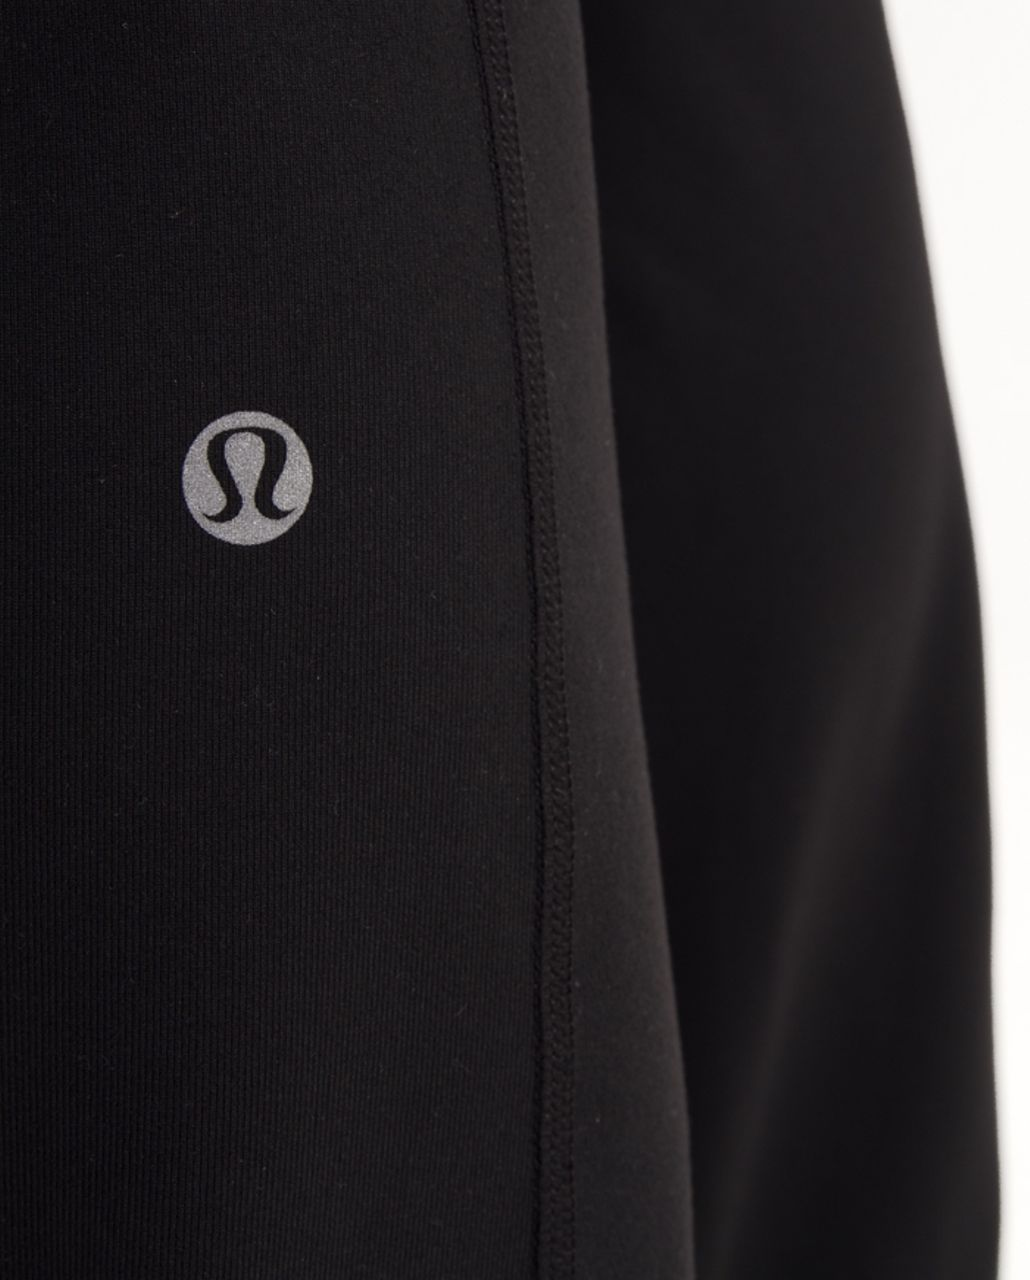 Lululemon Groove Pant (Tall) - Black /  Silver Pitter Patter Reflective